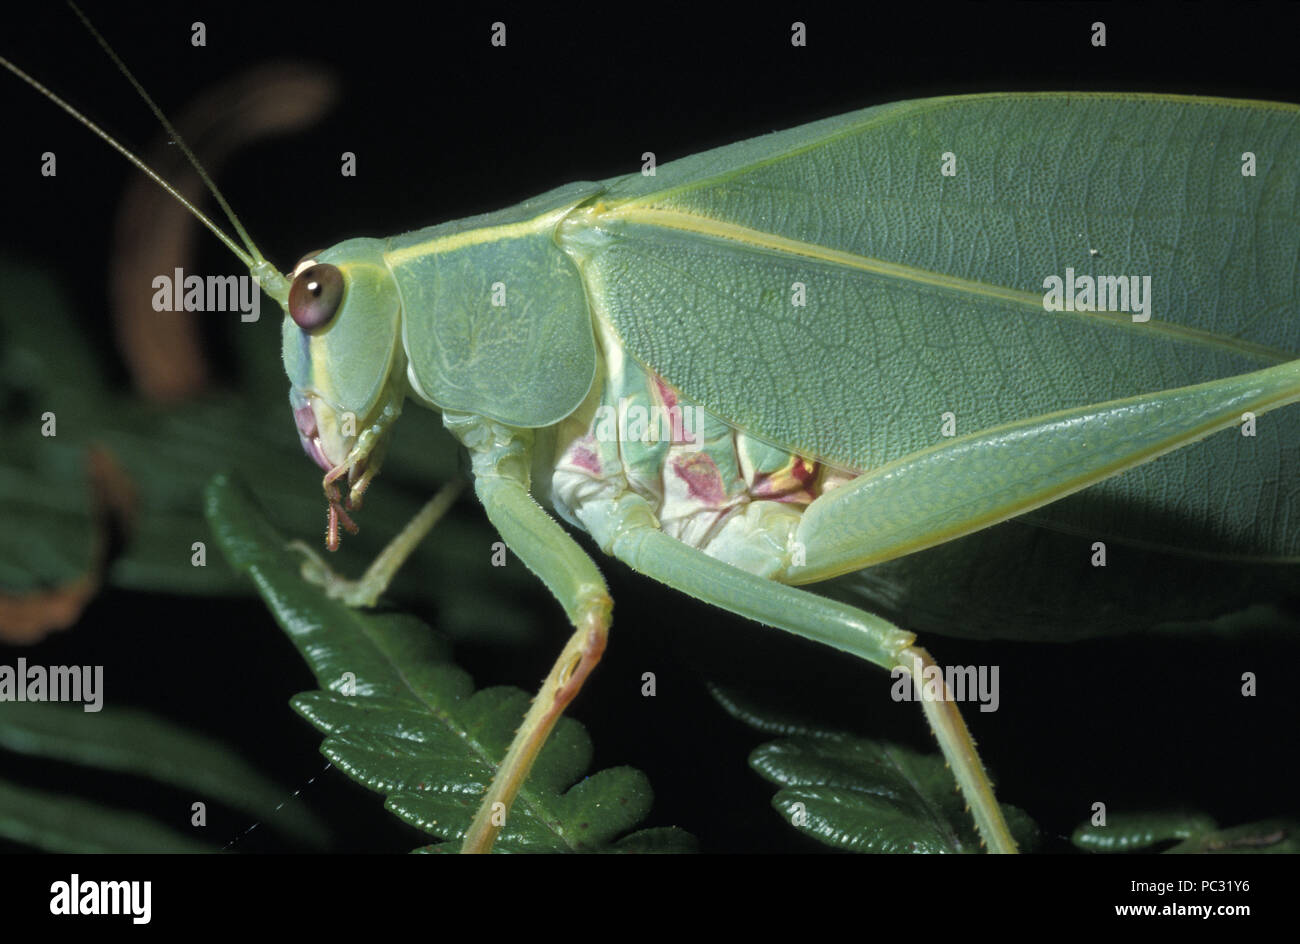 CLOSE-UP OF GUM LEAF KATYDID (ALSO KNOWN AS LONG-HORNED GRASSHOPPER) TETTIGONIIDAE - Stock Image